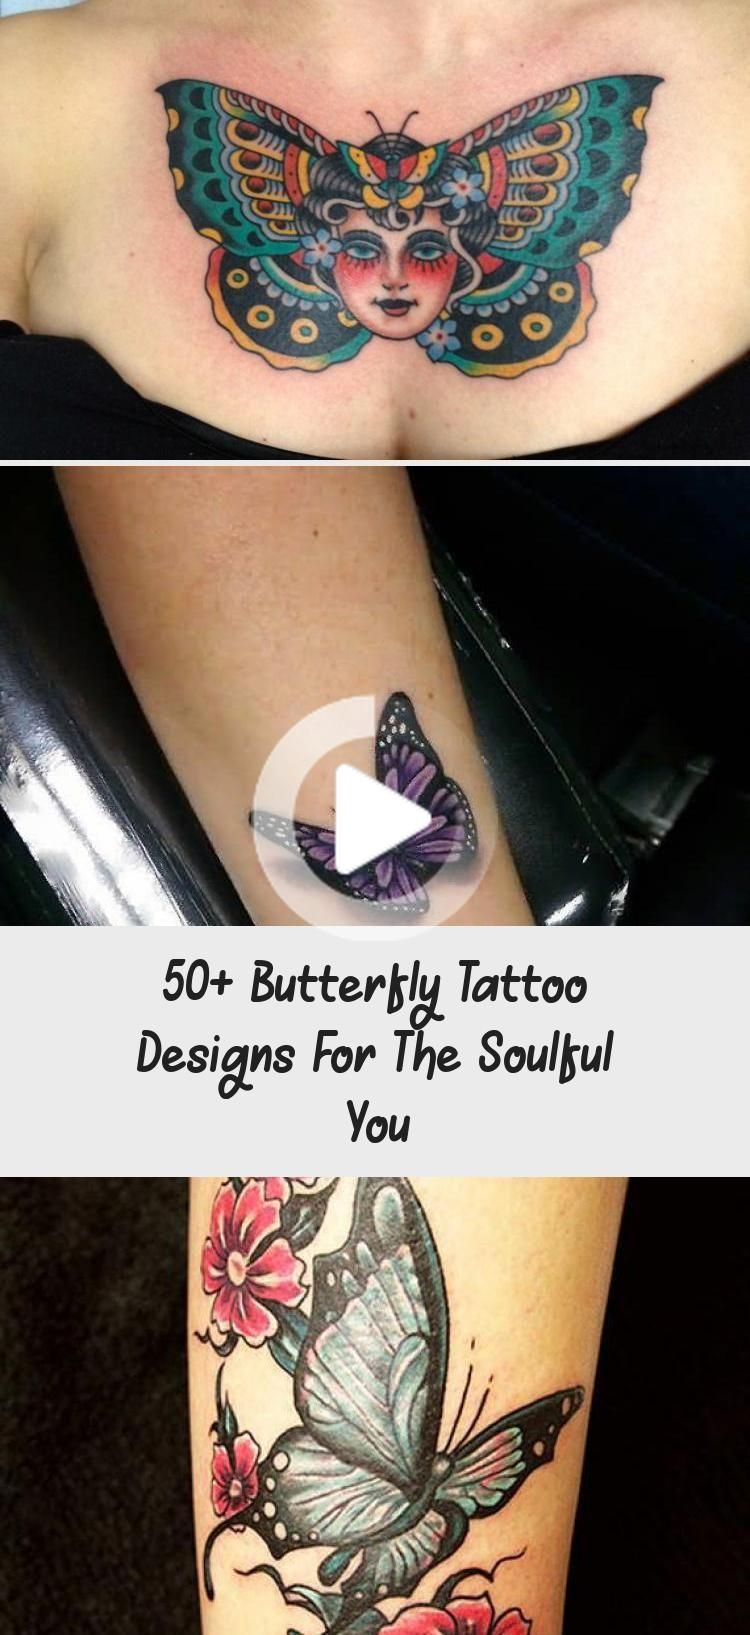 50+ Butterfly Tattoo Designs For The Soulful You - Tattoos and Body Ar